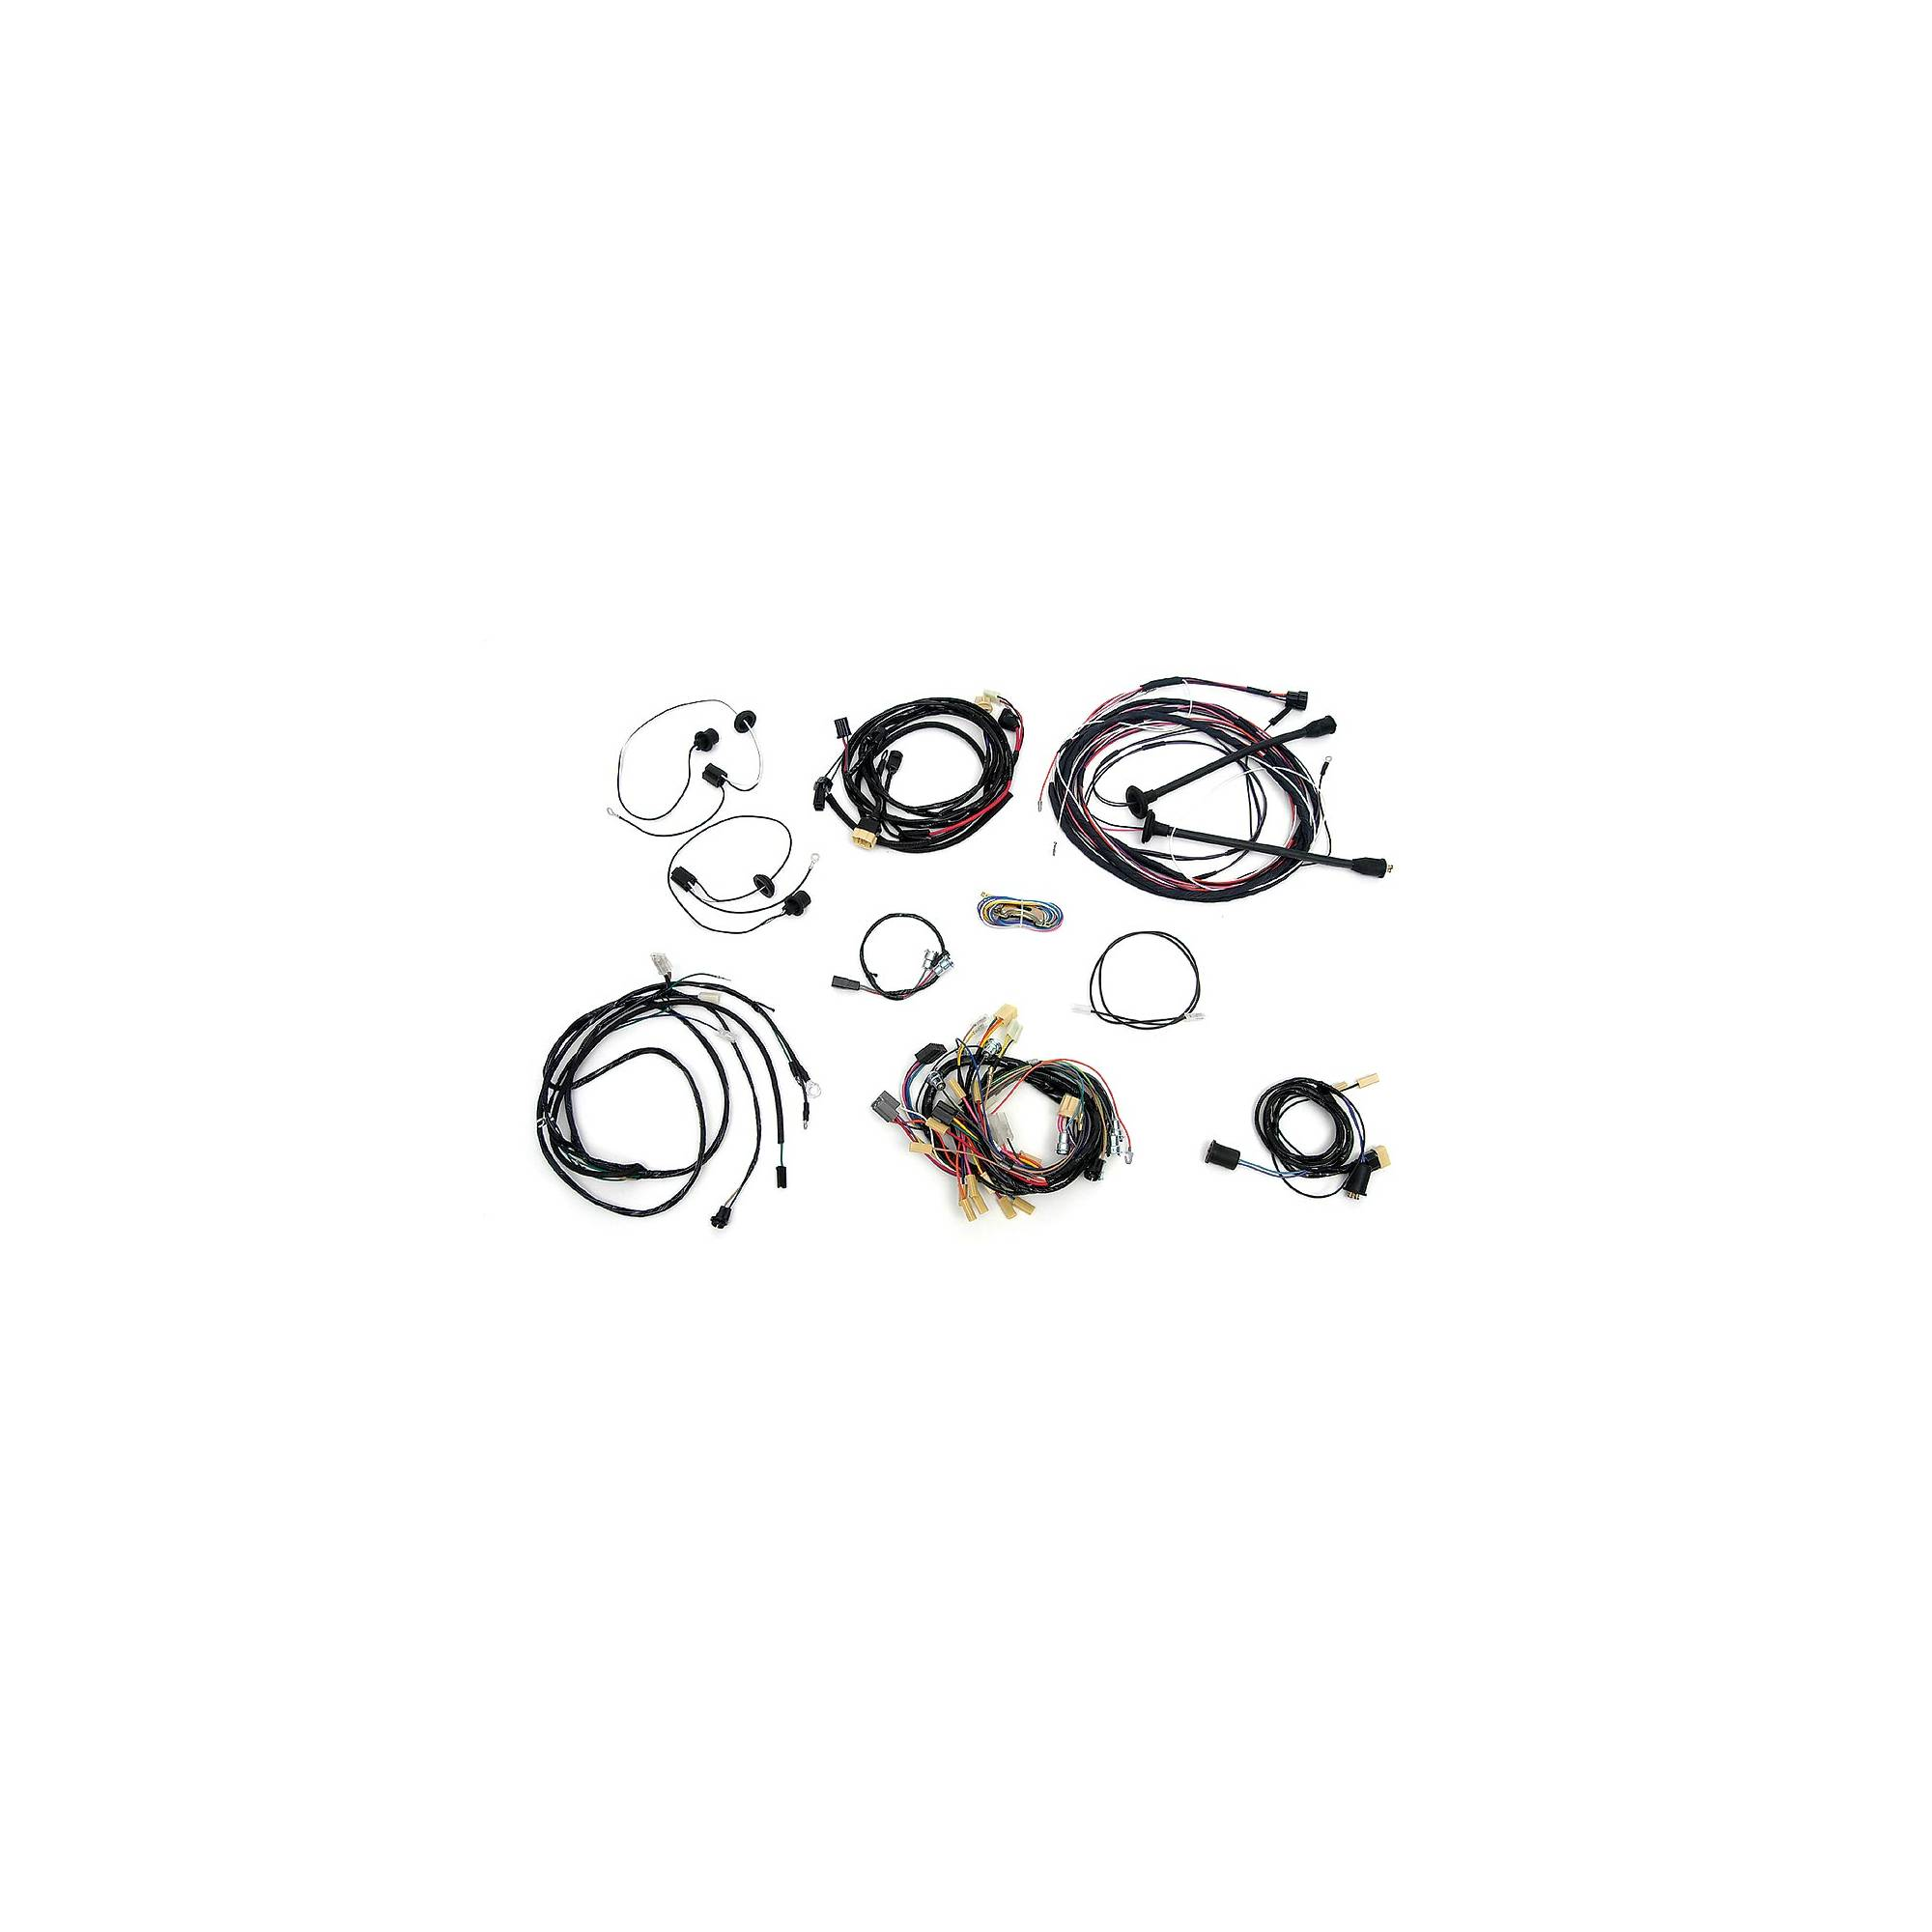 Eckler's Premier Products 57-177468 Chevy Wiring Harness